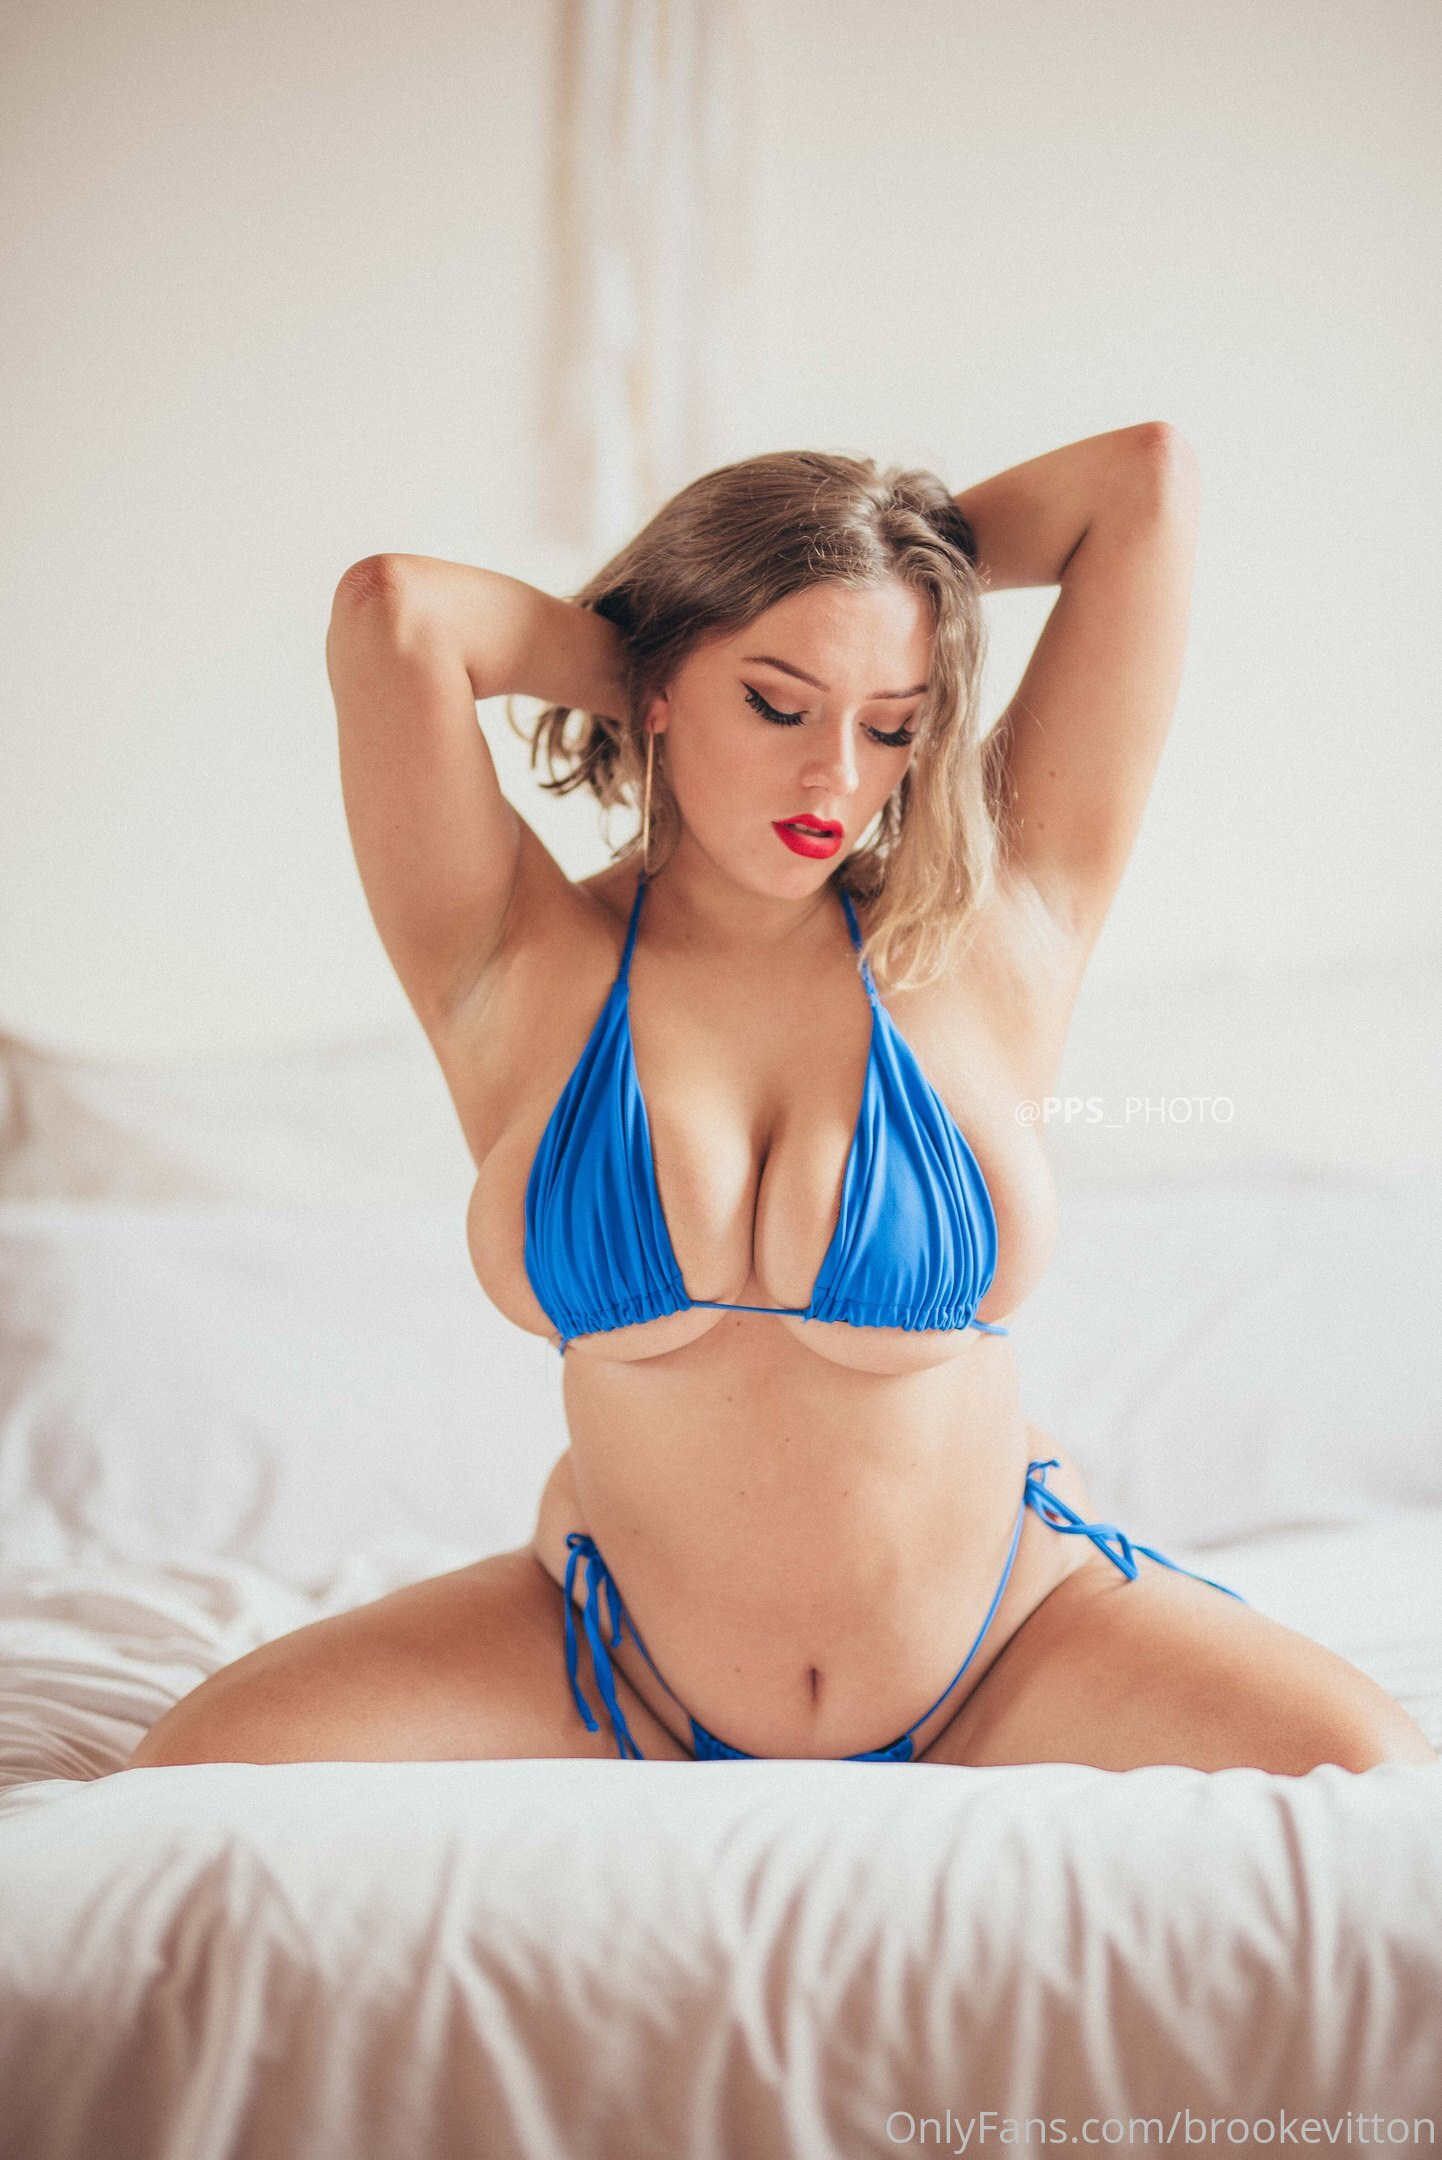 Avalon Hope, Avalonhopeofficial, Onlyfans 0003